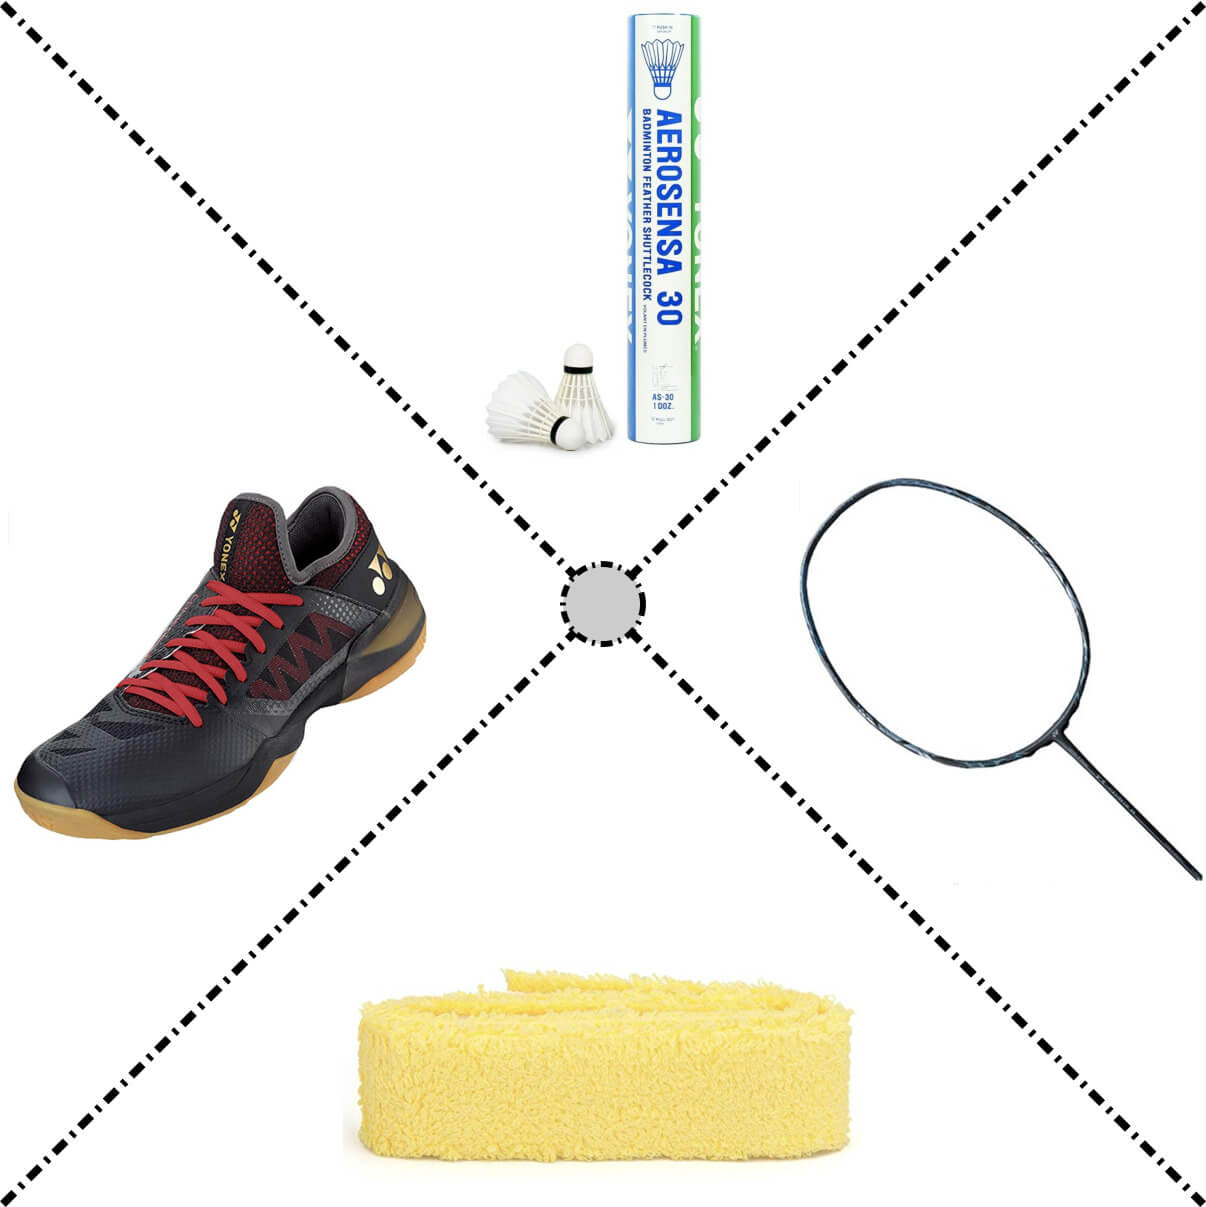 Why Buying the Right Badminton Equipment is so Important